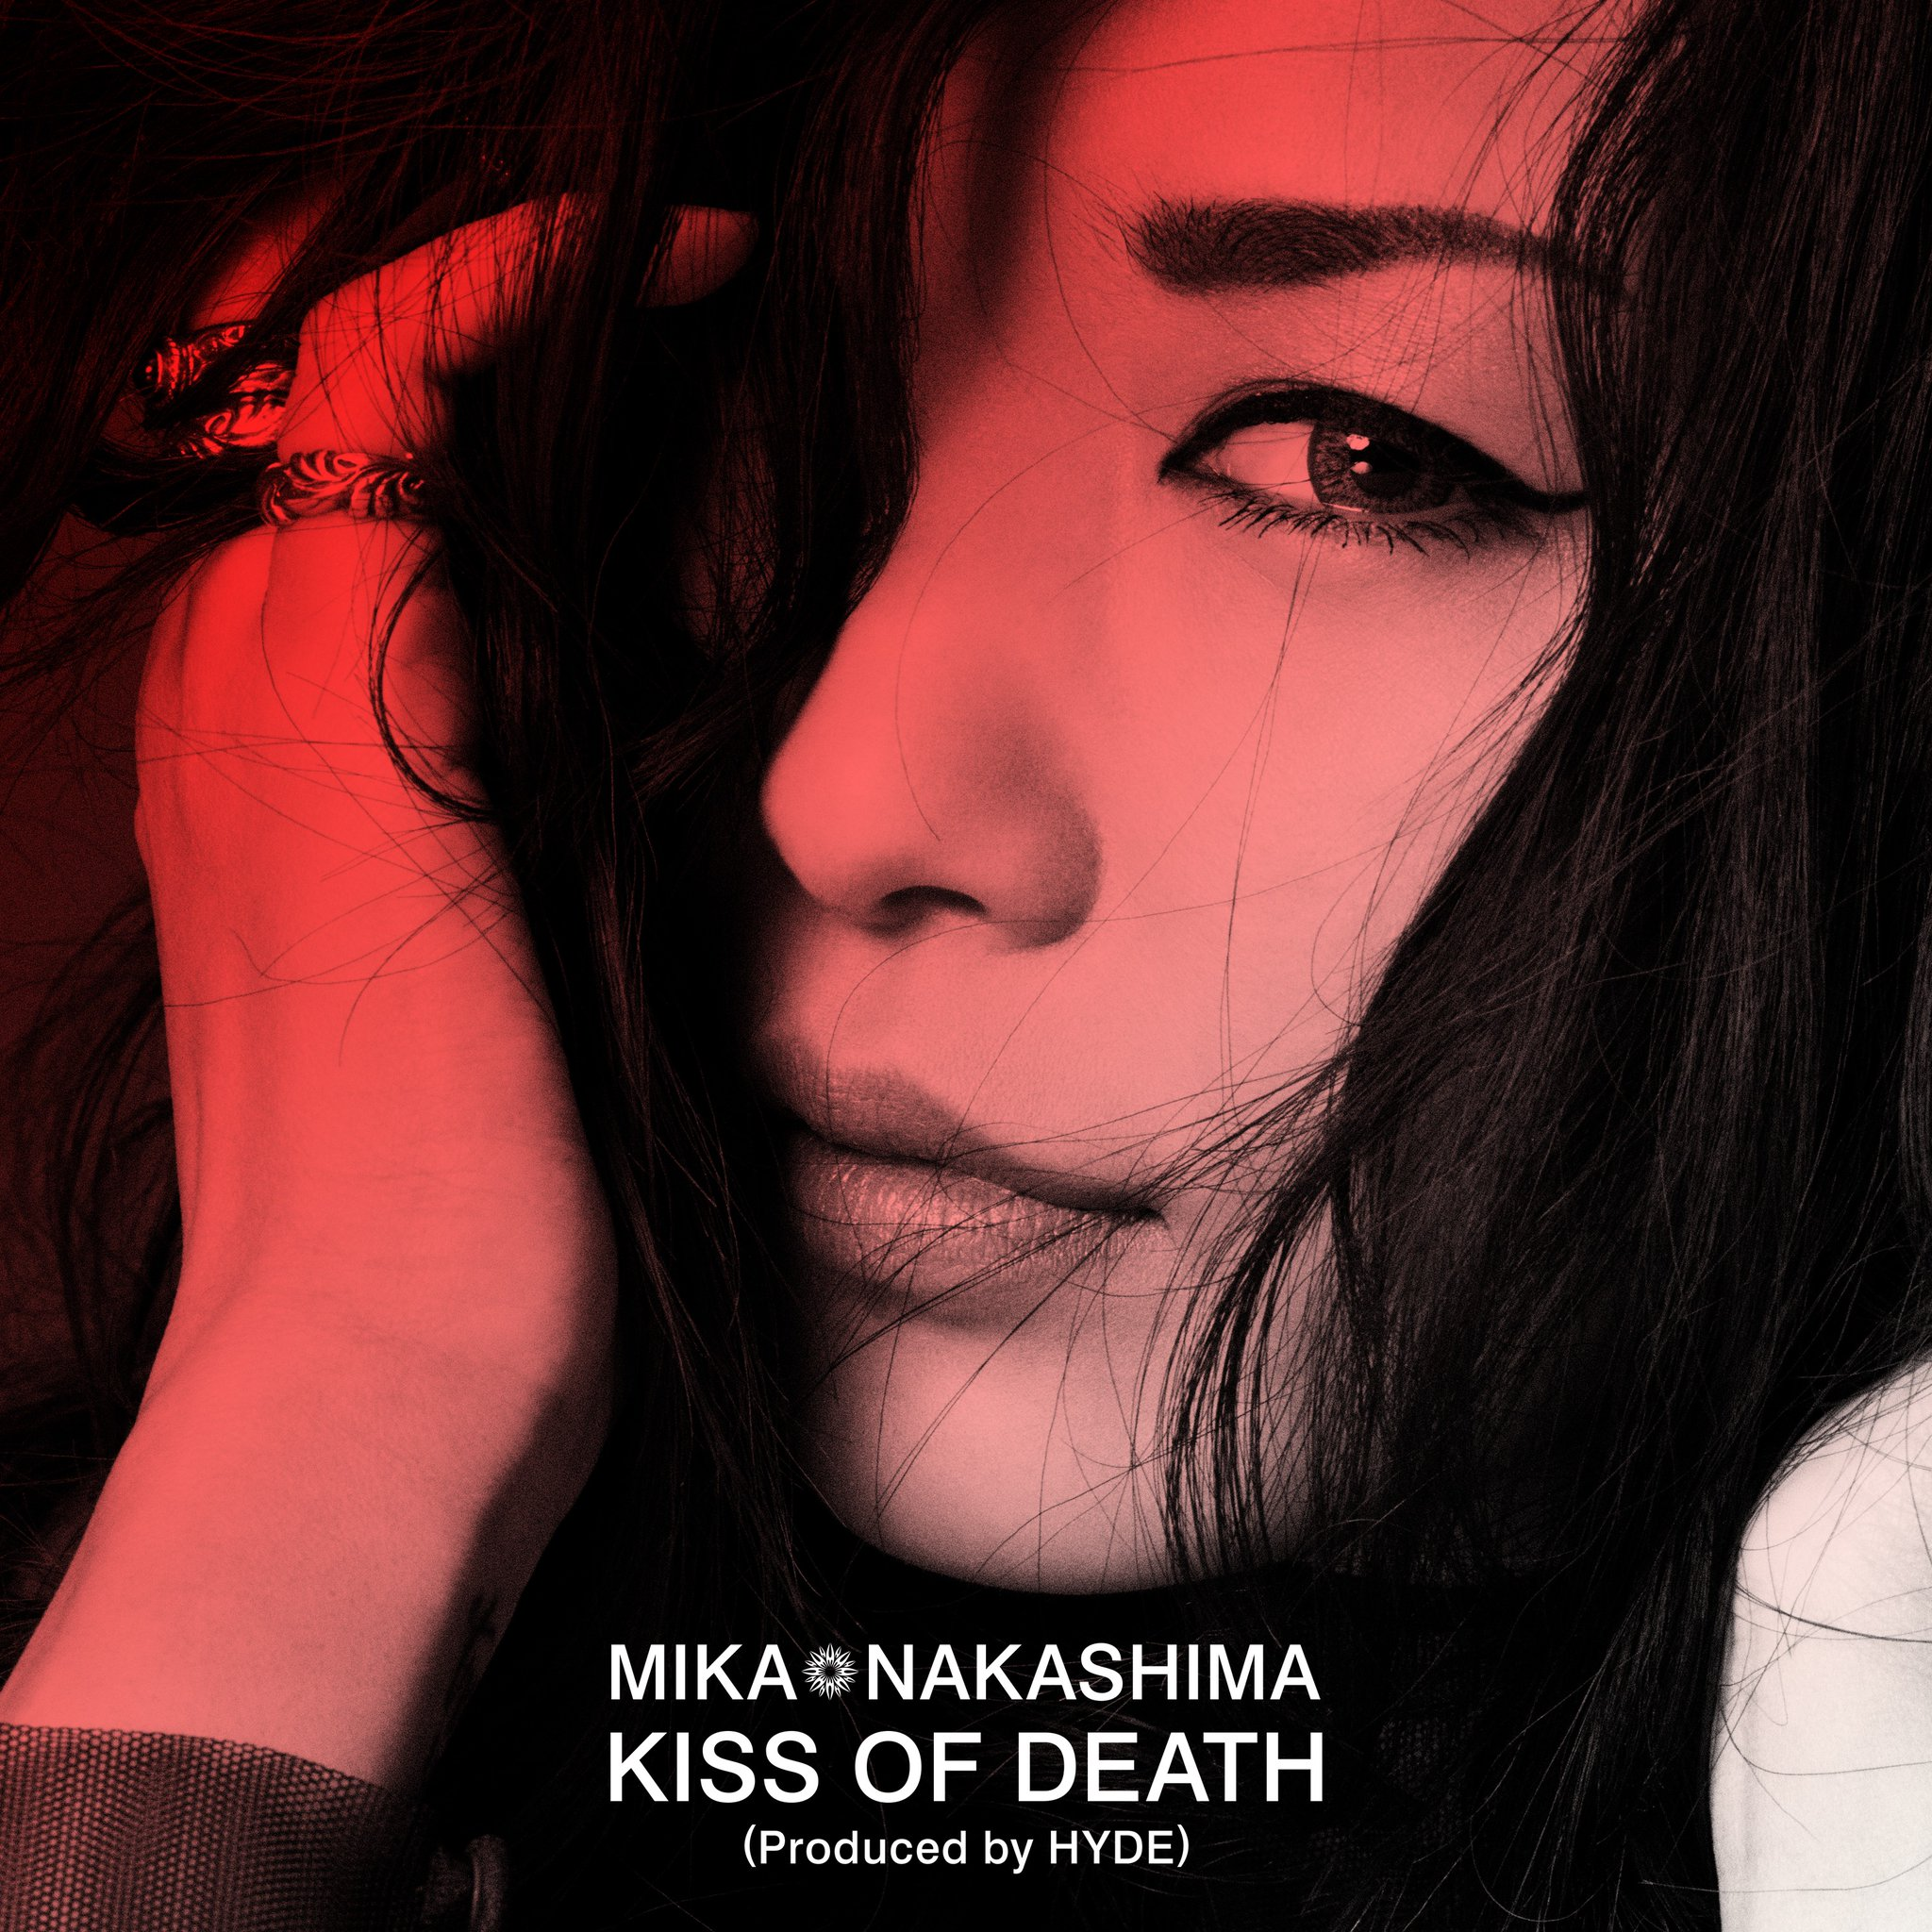 KISS OF DEATH (Produced by HYDE)